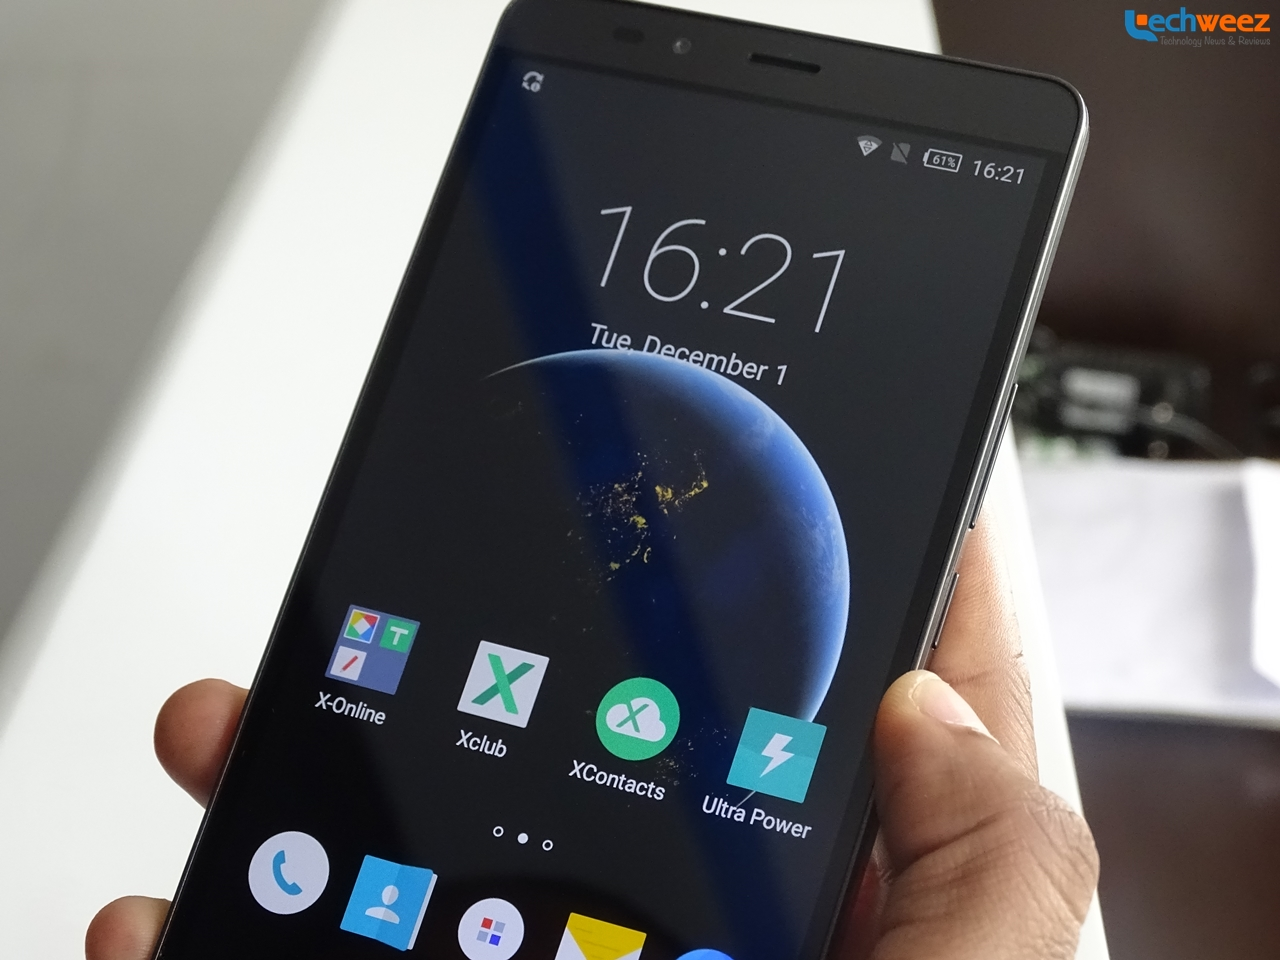 6 Things You Need to Know About the Infinix Note 2